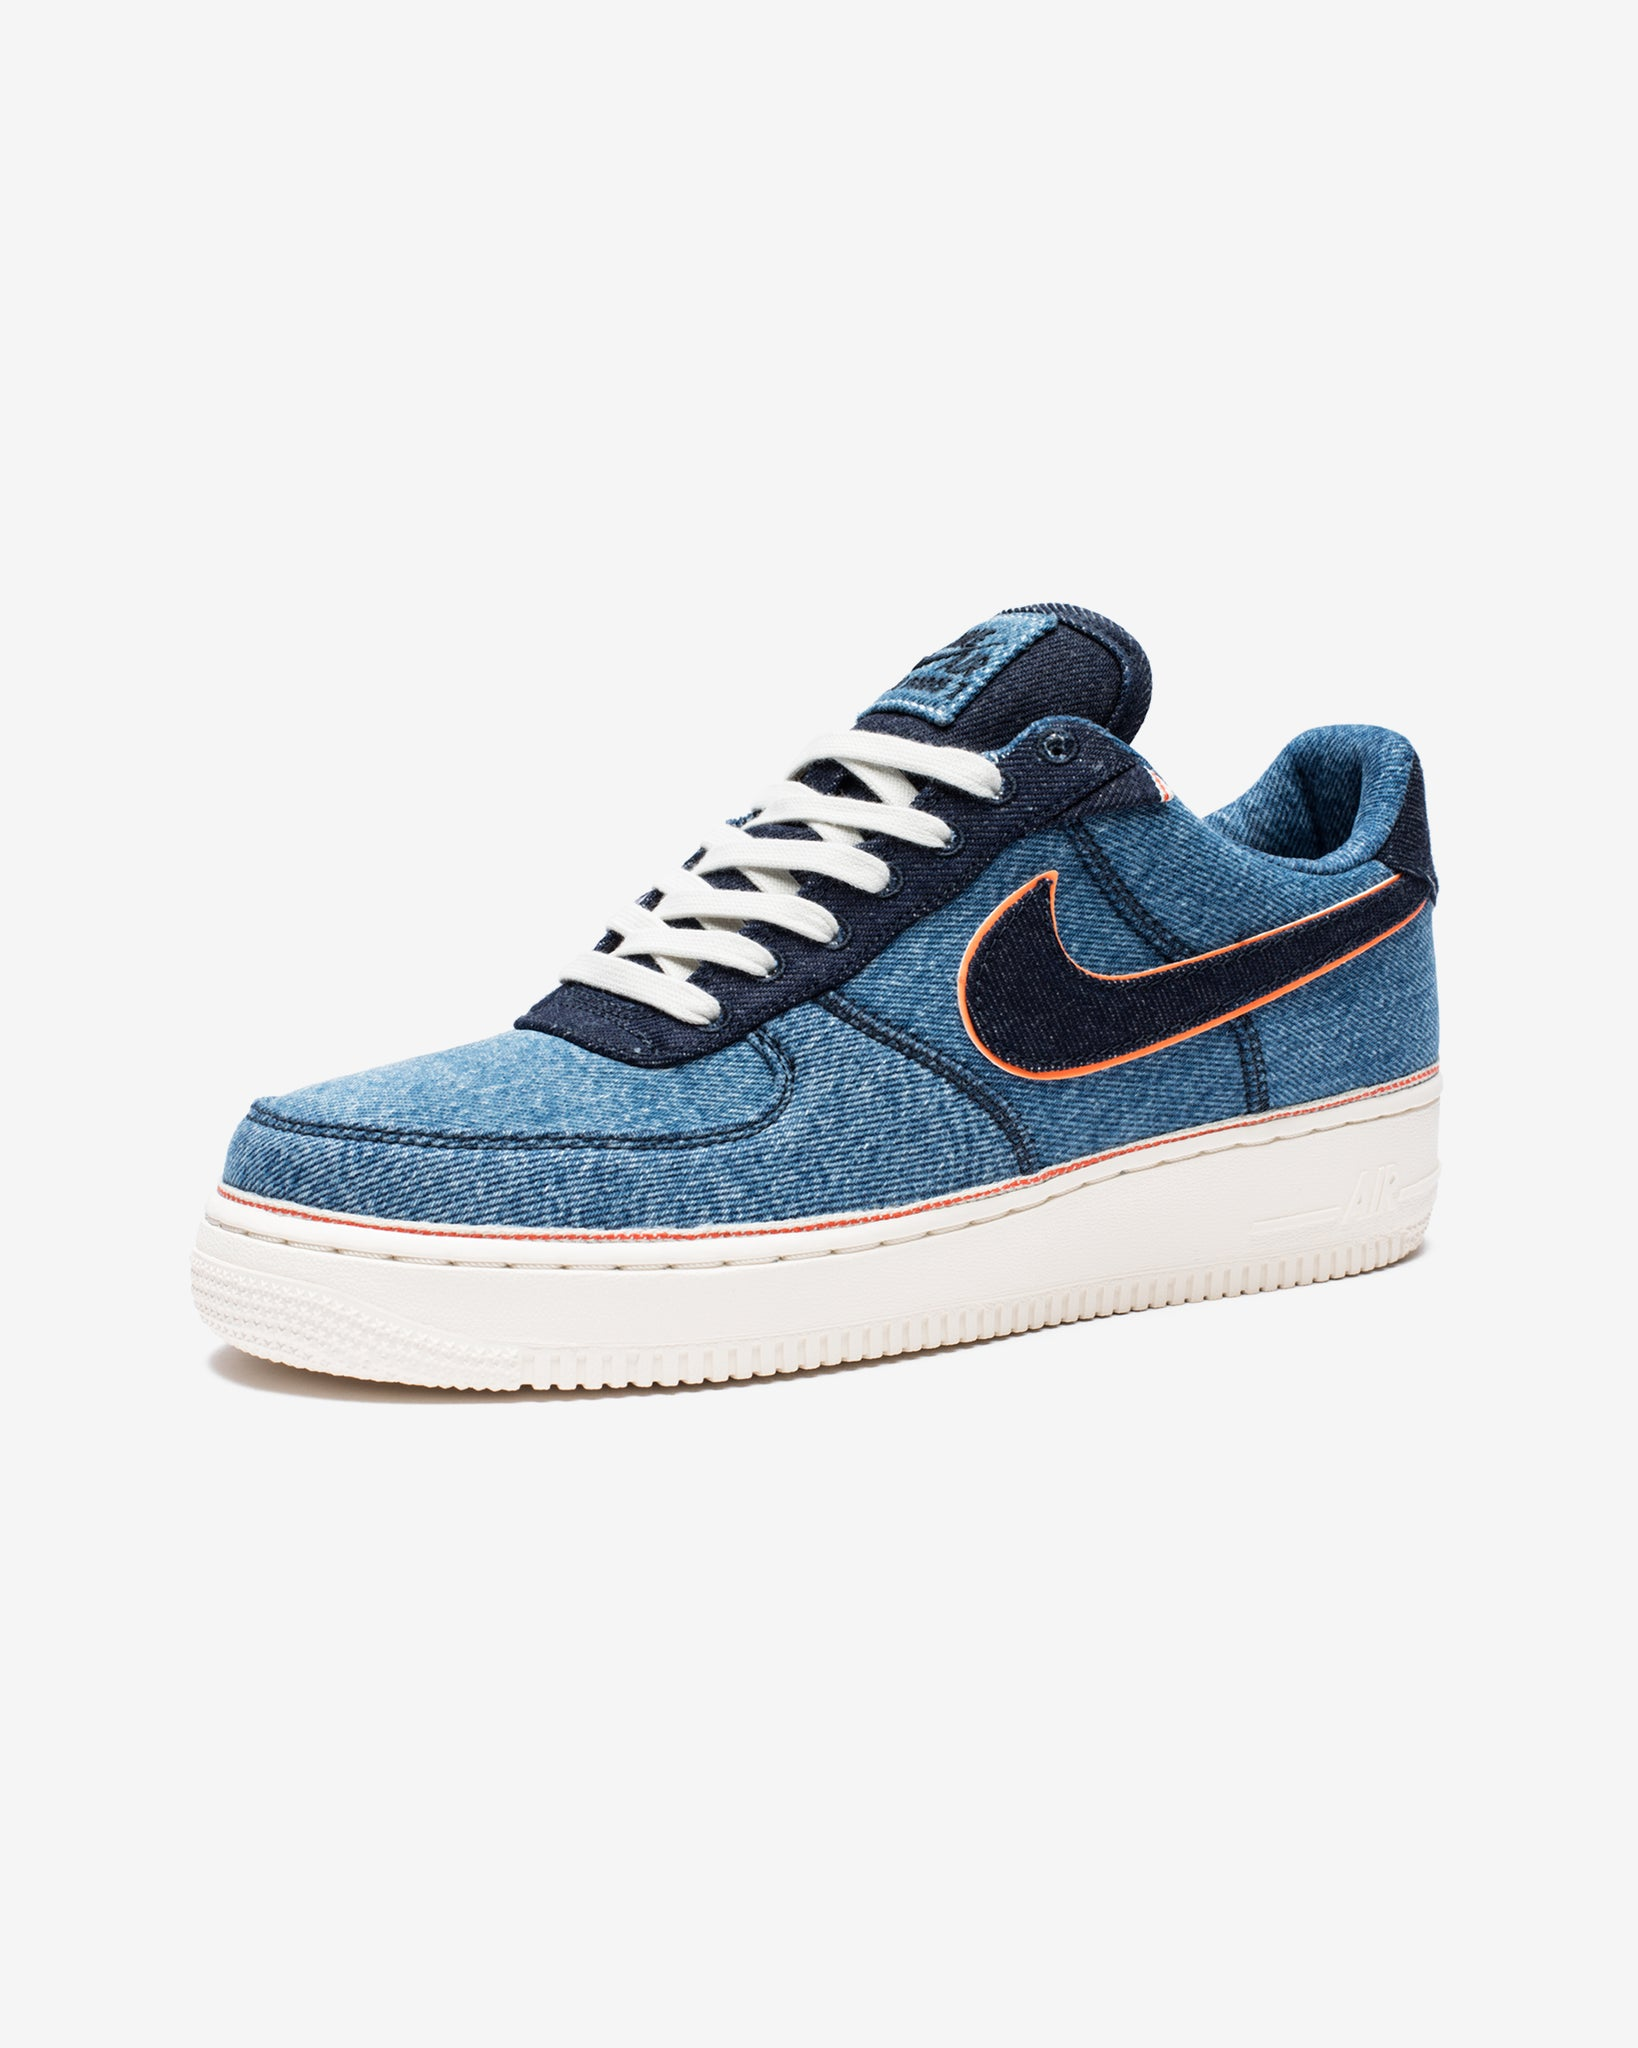 AIR FORCE 1 '07 PRM - STONEWASHBLUE/DARKOBSIDIAN